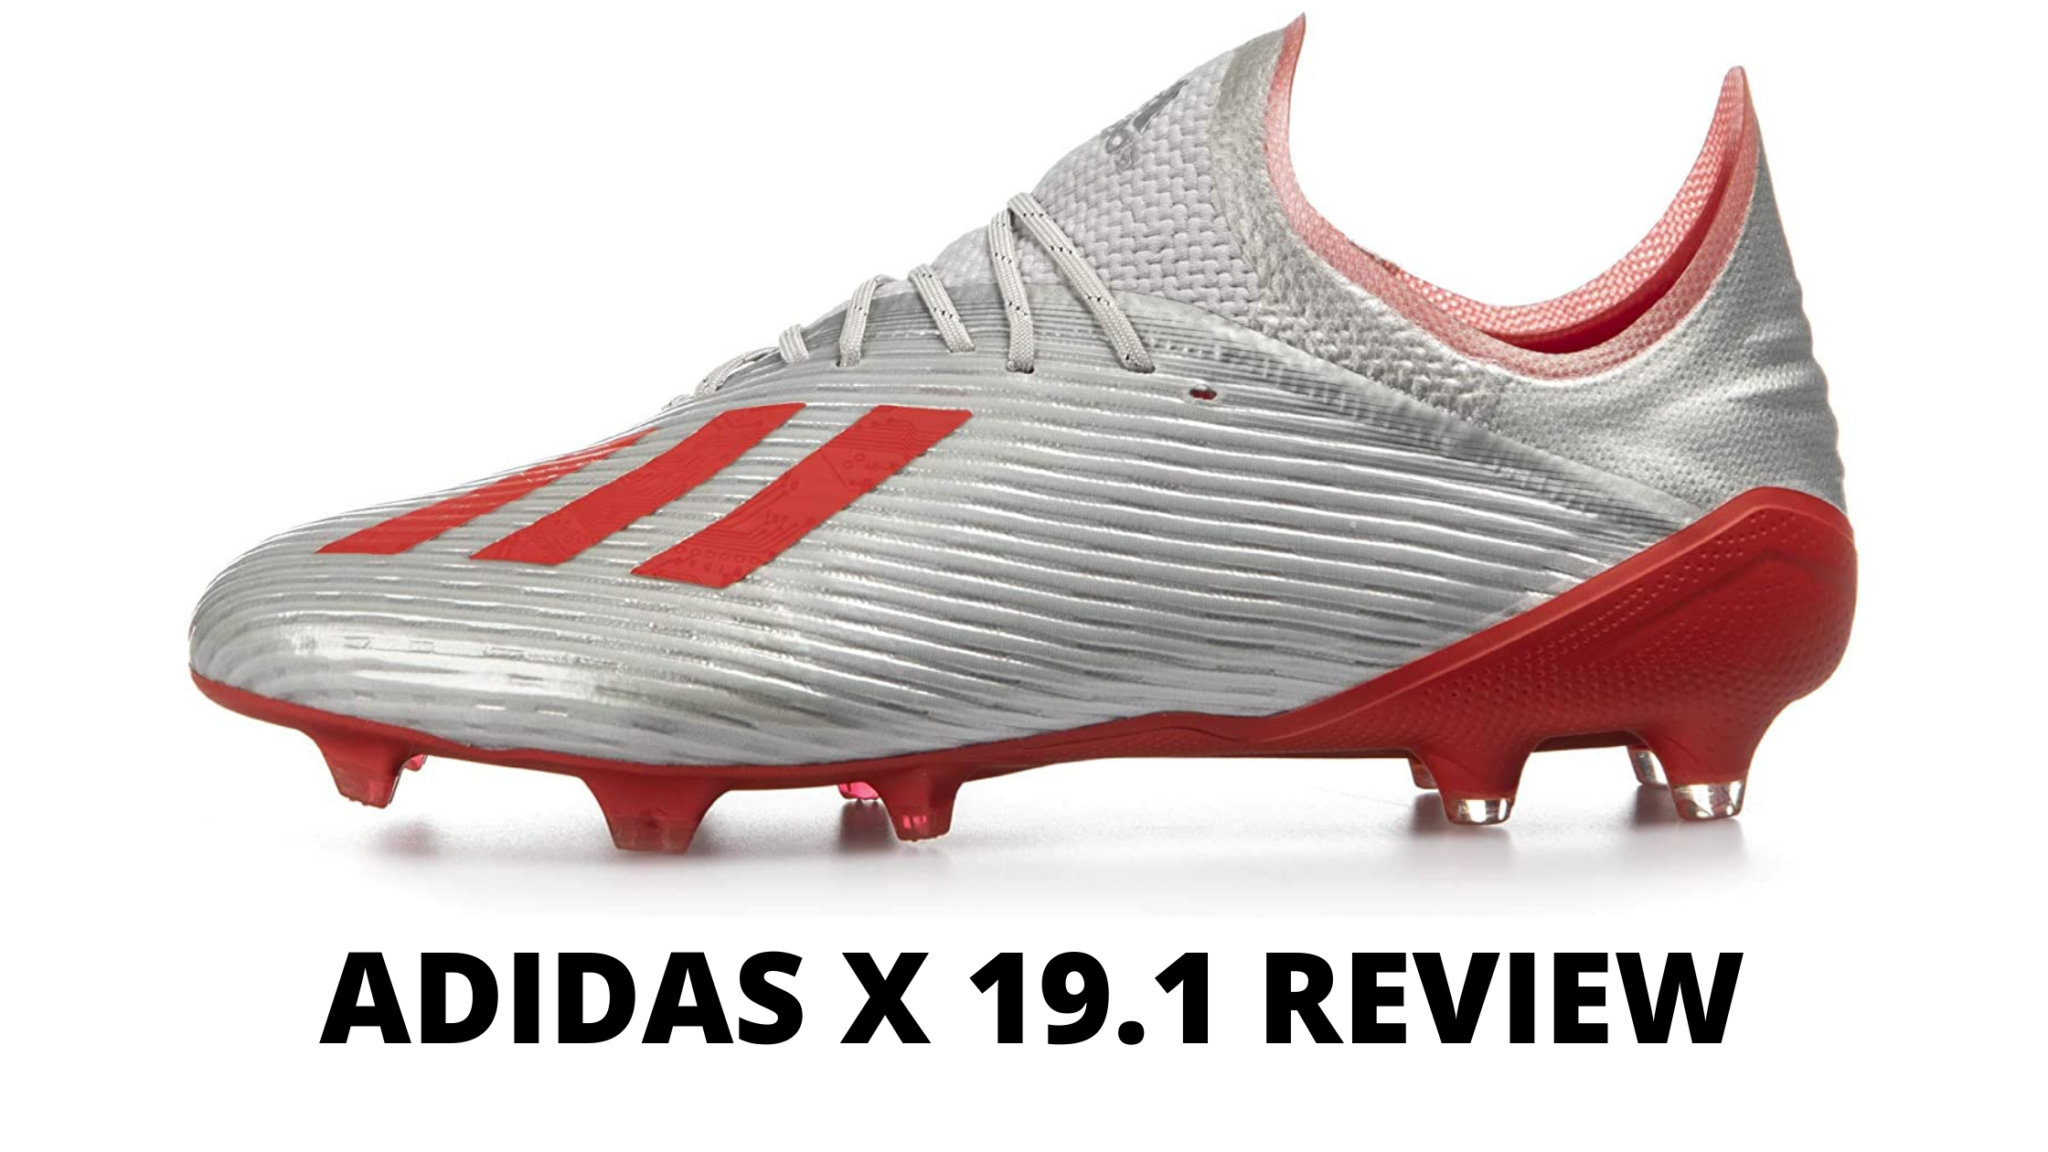 Adidas X 19.1 review